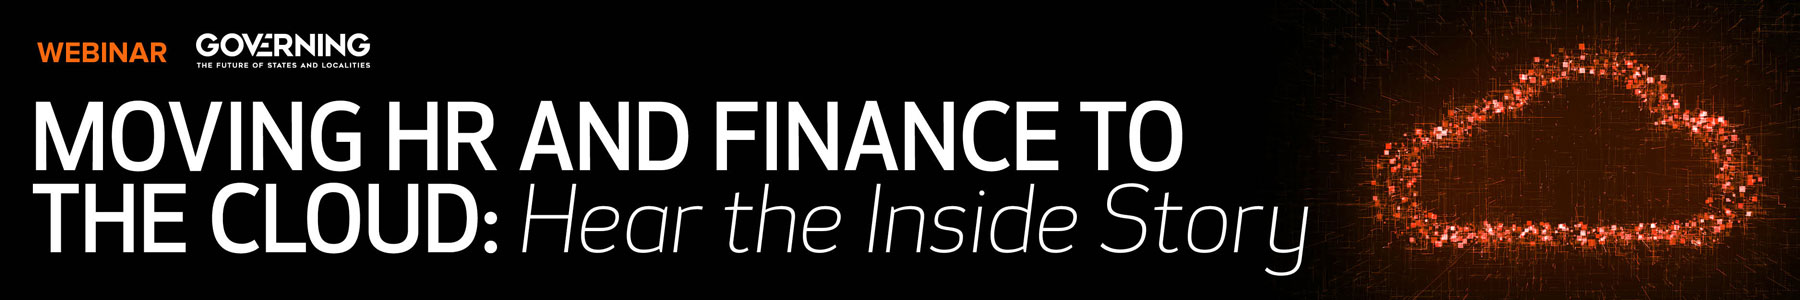 Moving HR and Finance to the Cloud: Hear the Inside Story